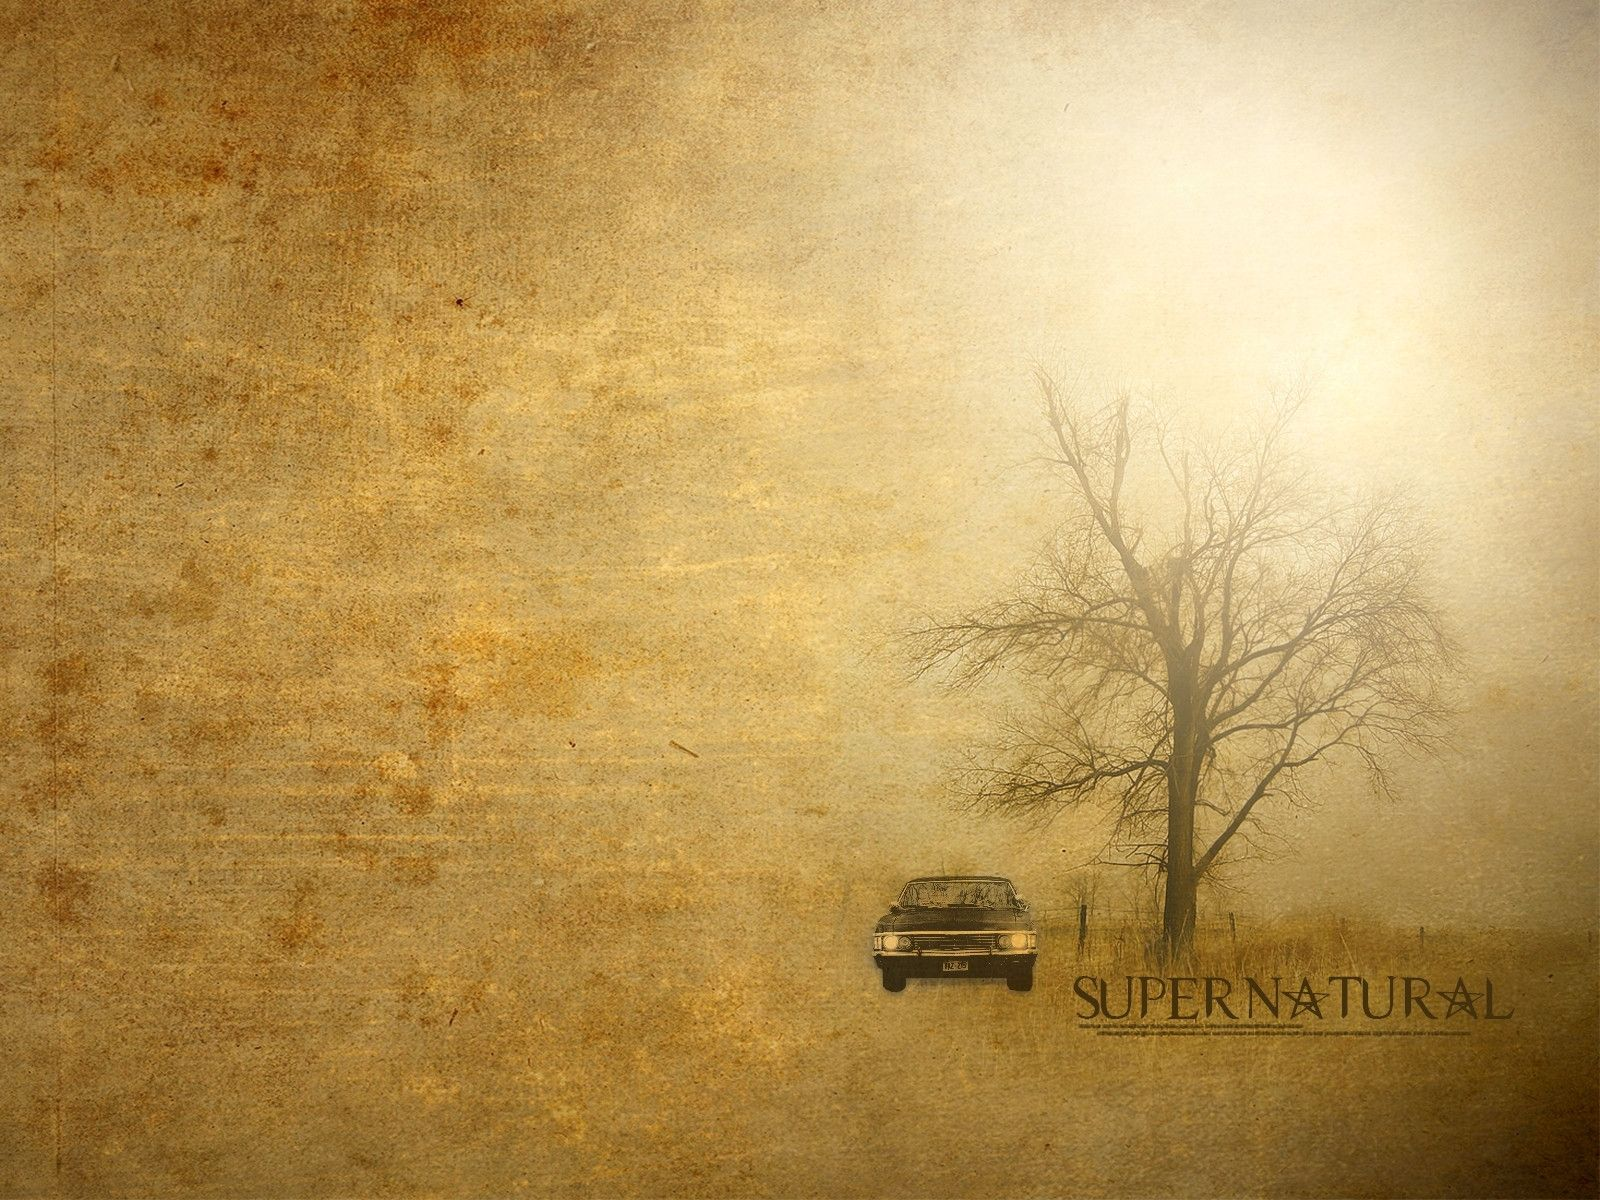 Best-ideas-about-Supernatural-on-Pinterest-1920×1080-Supernatural-wallpaper-wp3603268